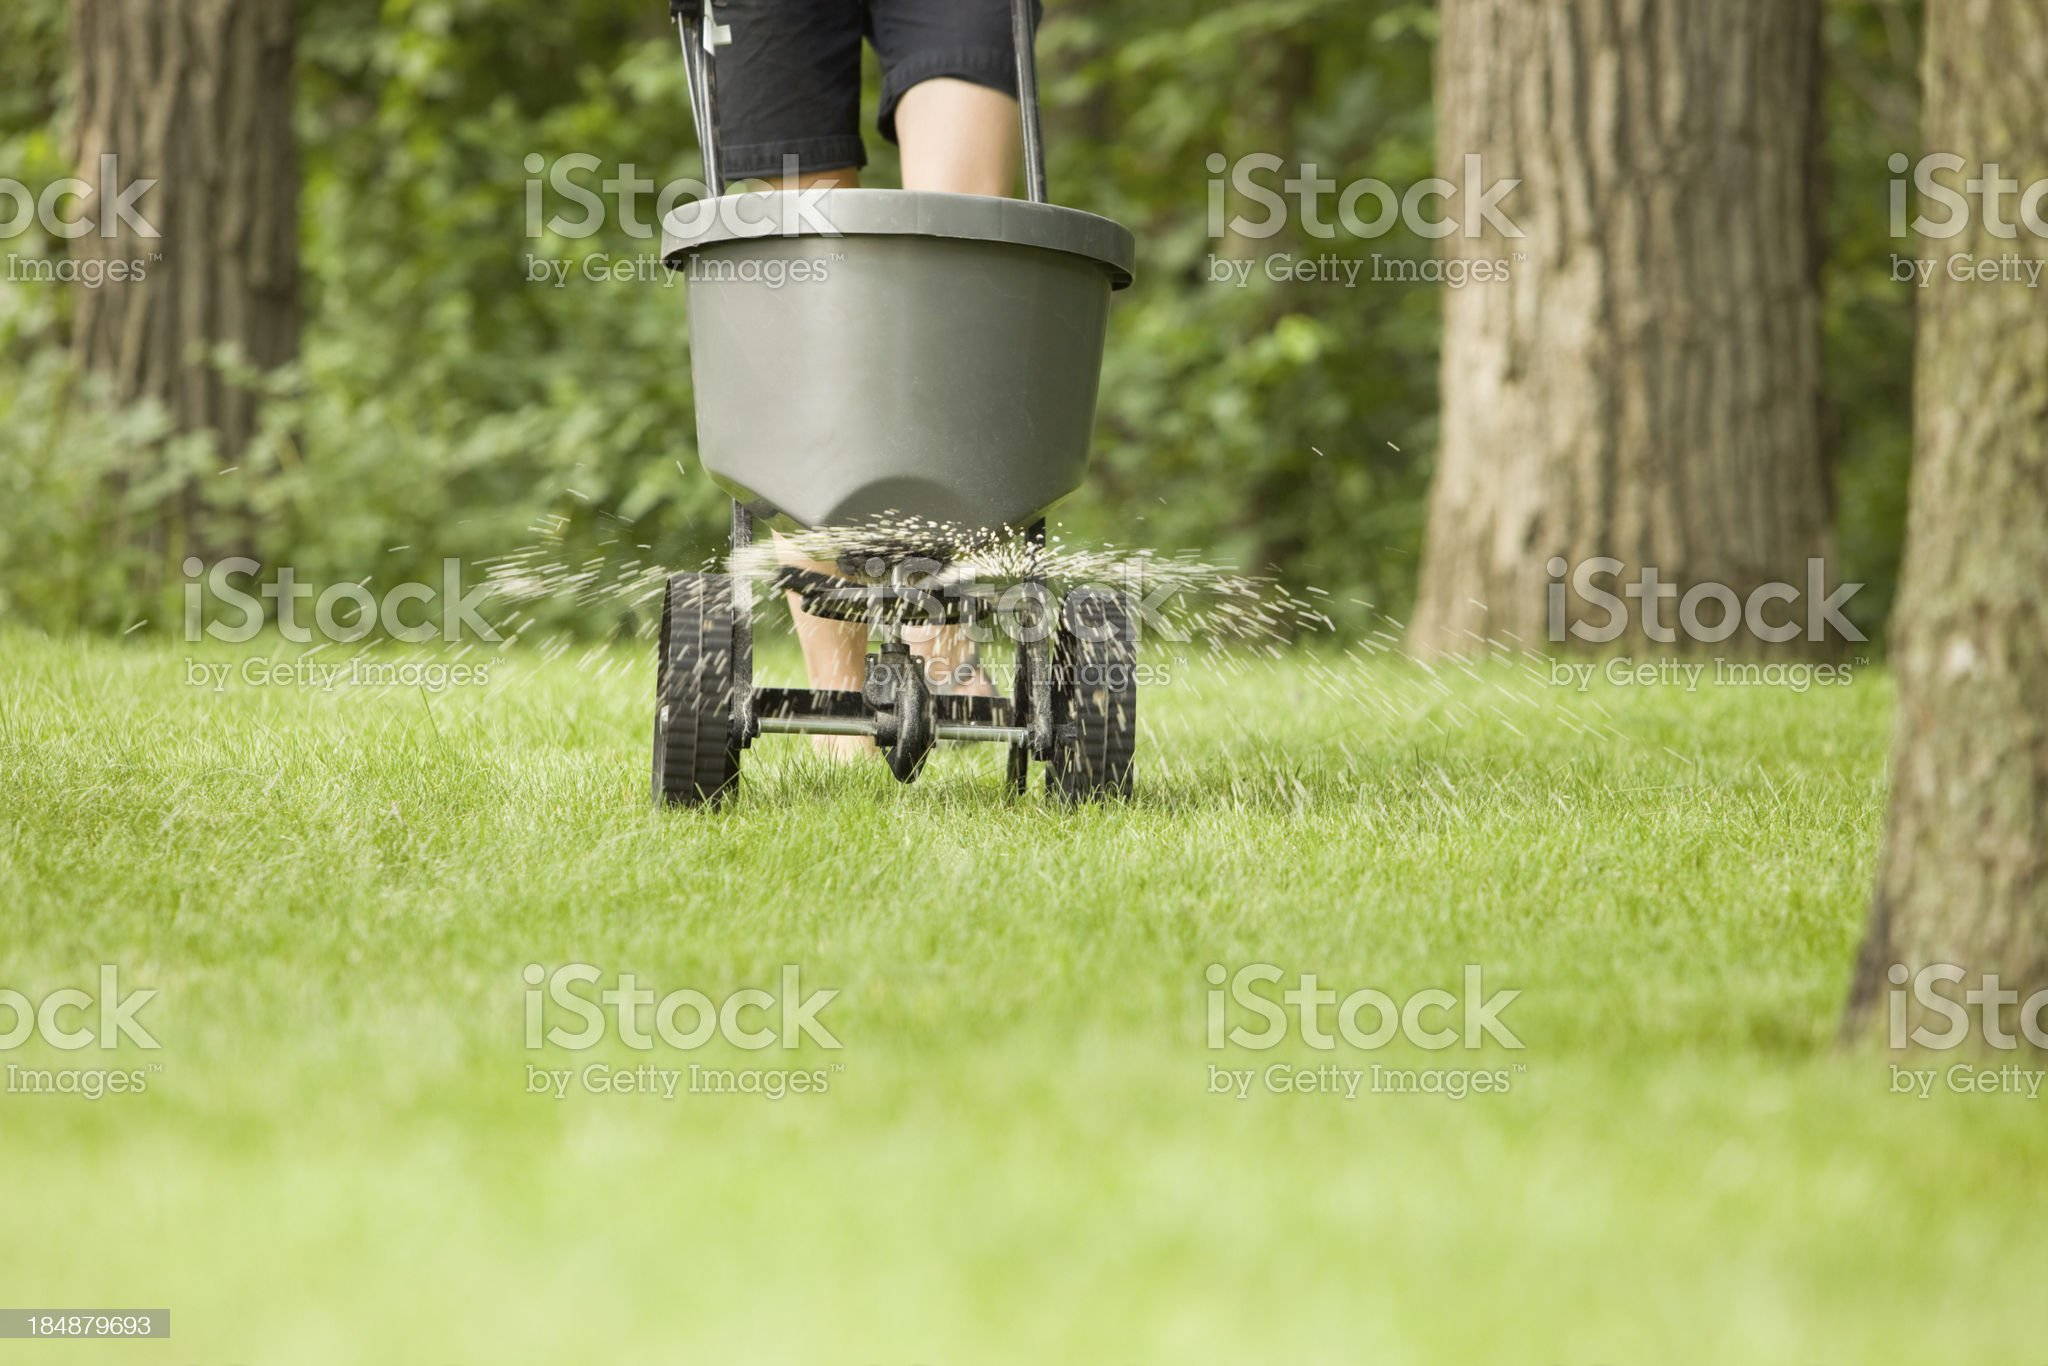 Fertilizer Spreader with Pellets Spraying on Grass royalty-free stock photo